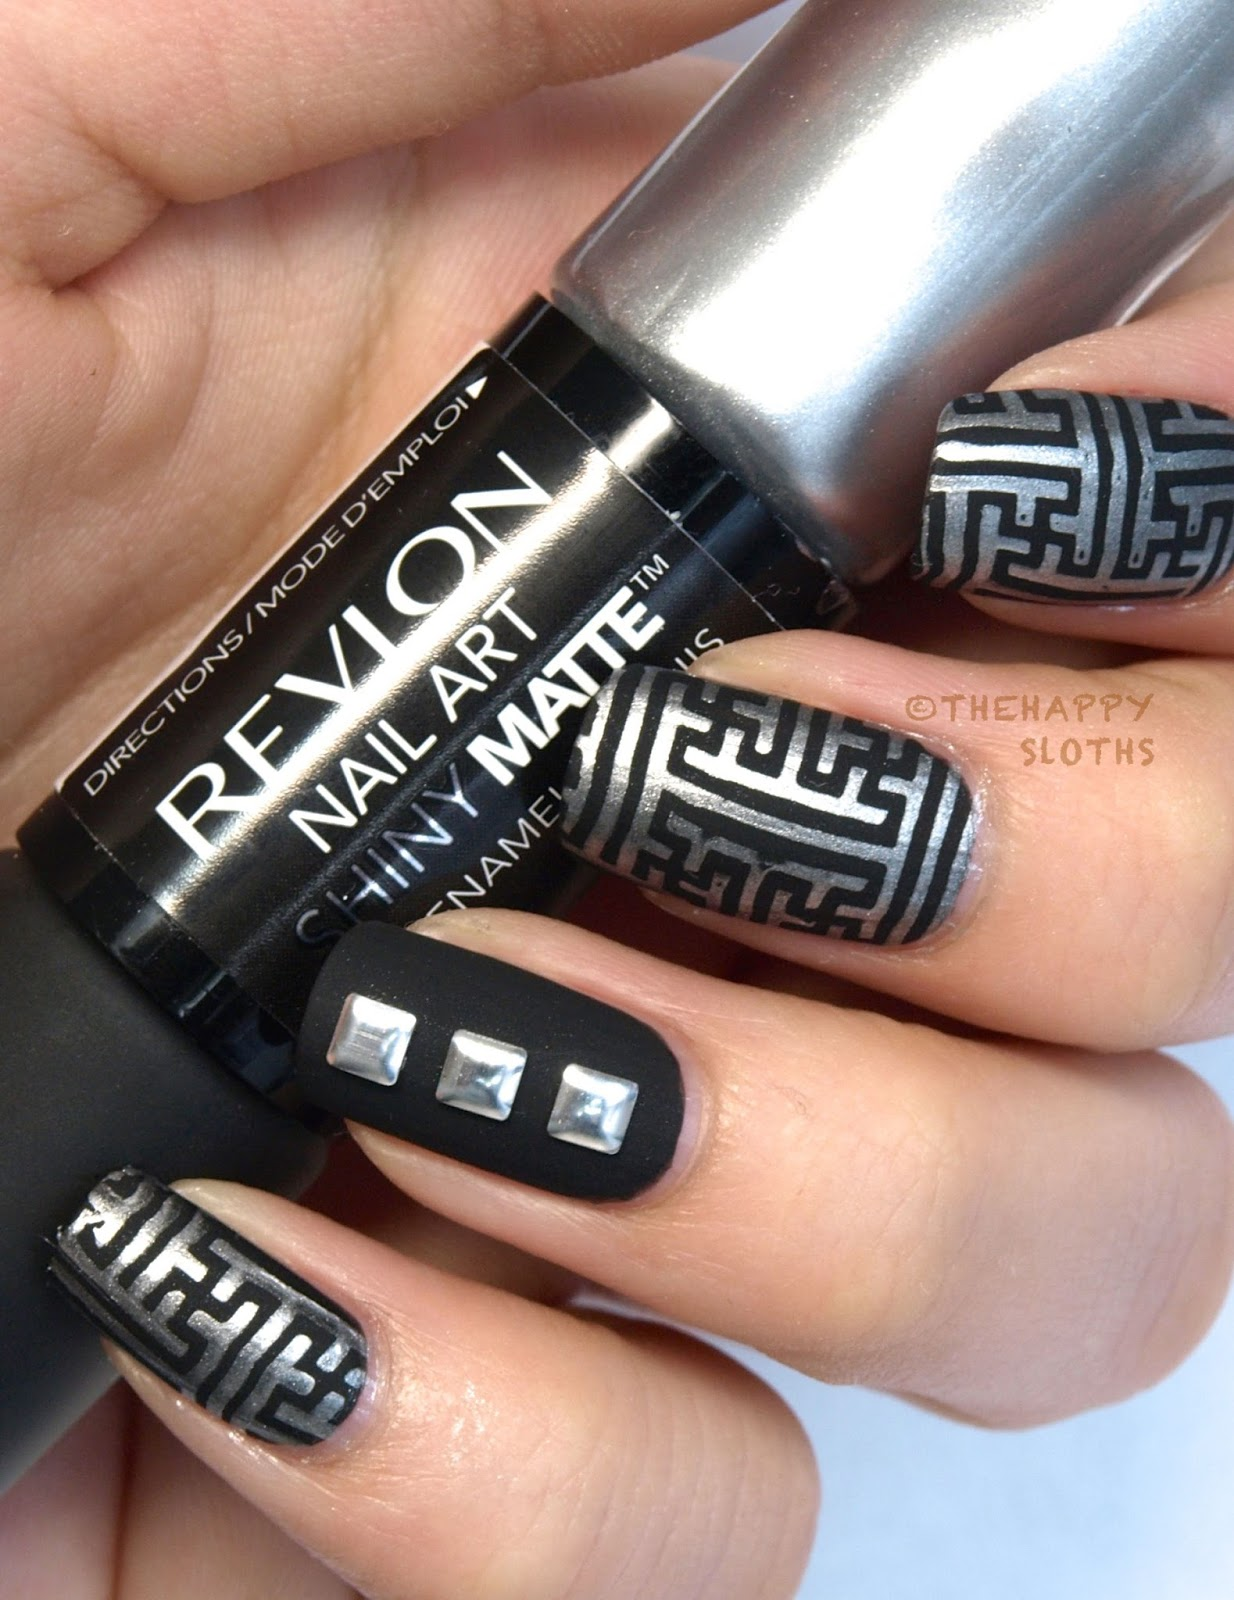 Revlon Nail Art Shiny Matte Nail Enamel In Quot Leather Amp Lace